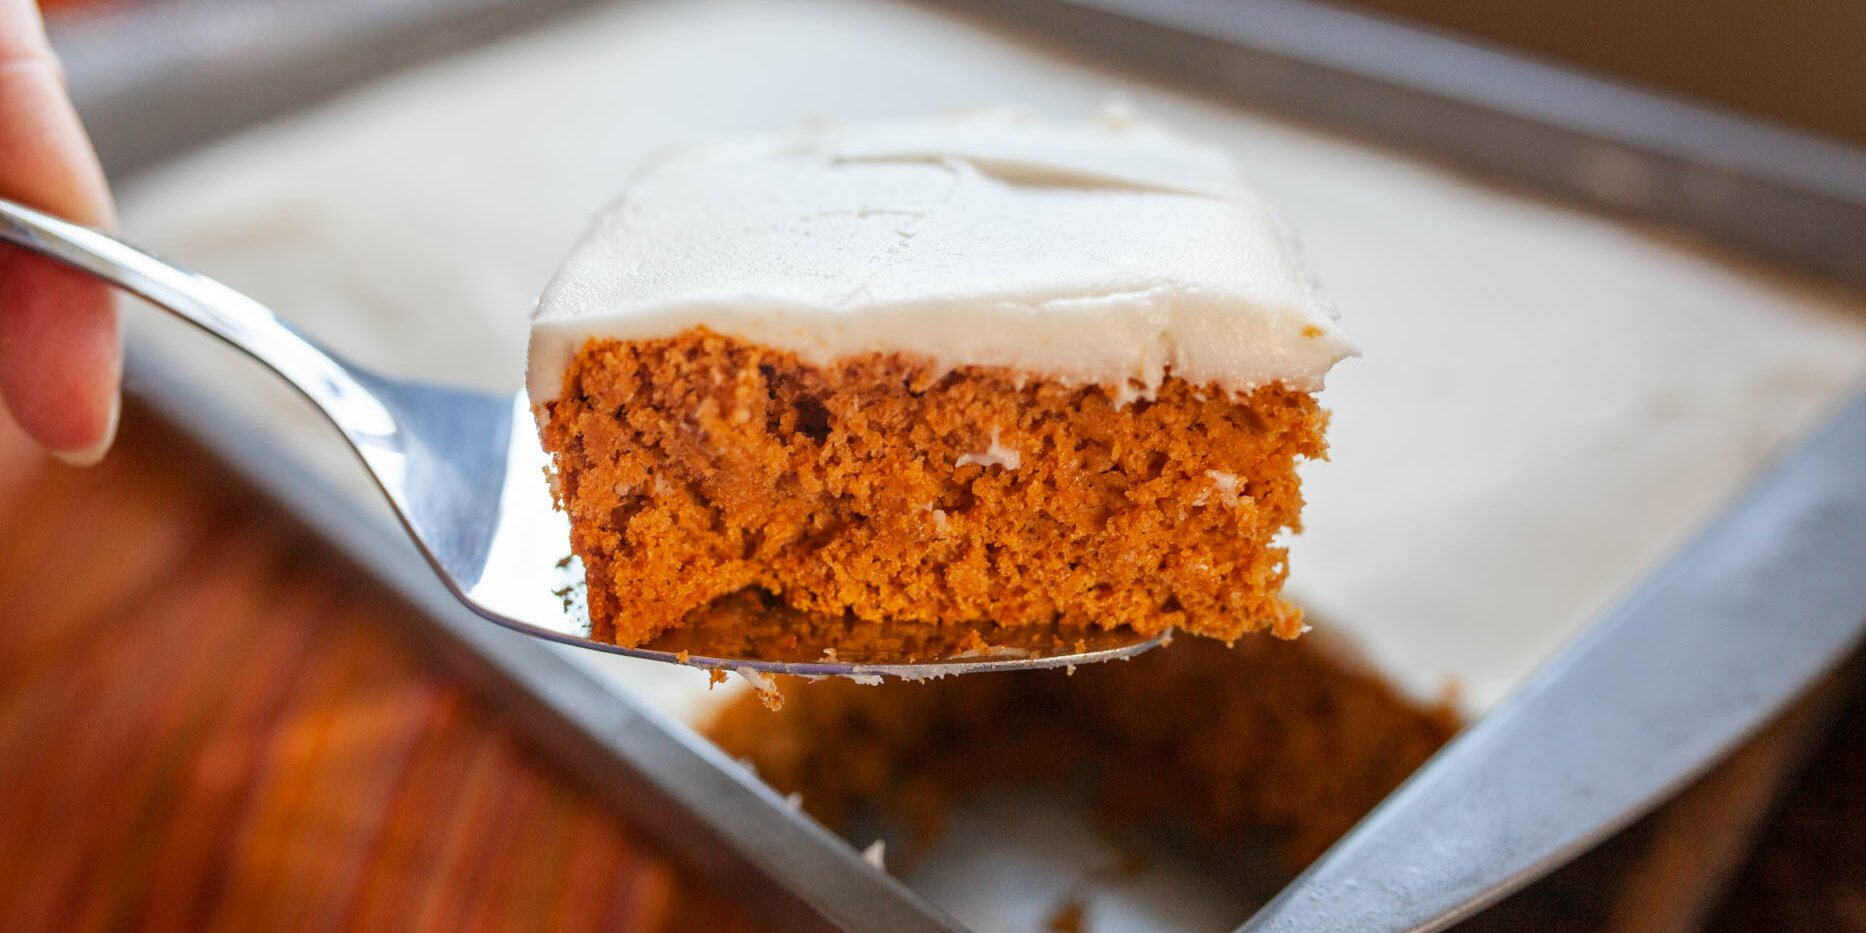 Canned Pumpkin + Cake Mix = Your Fall Dessert Obsession.